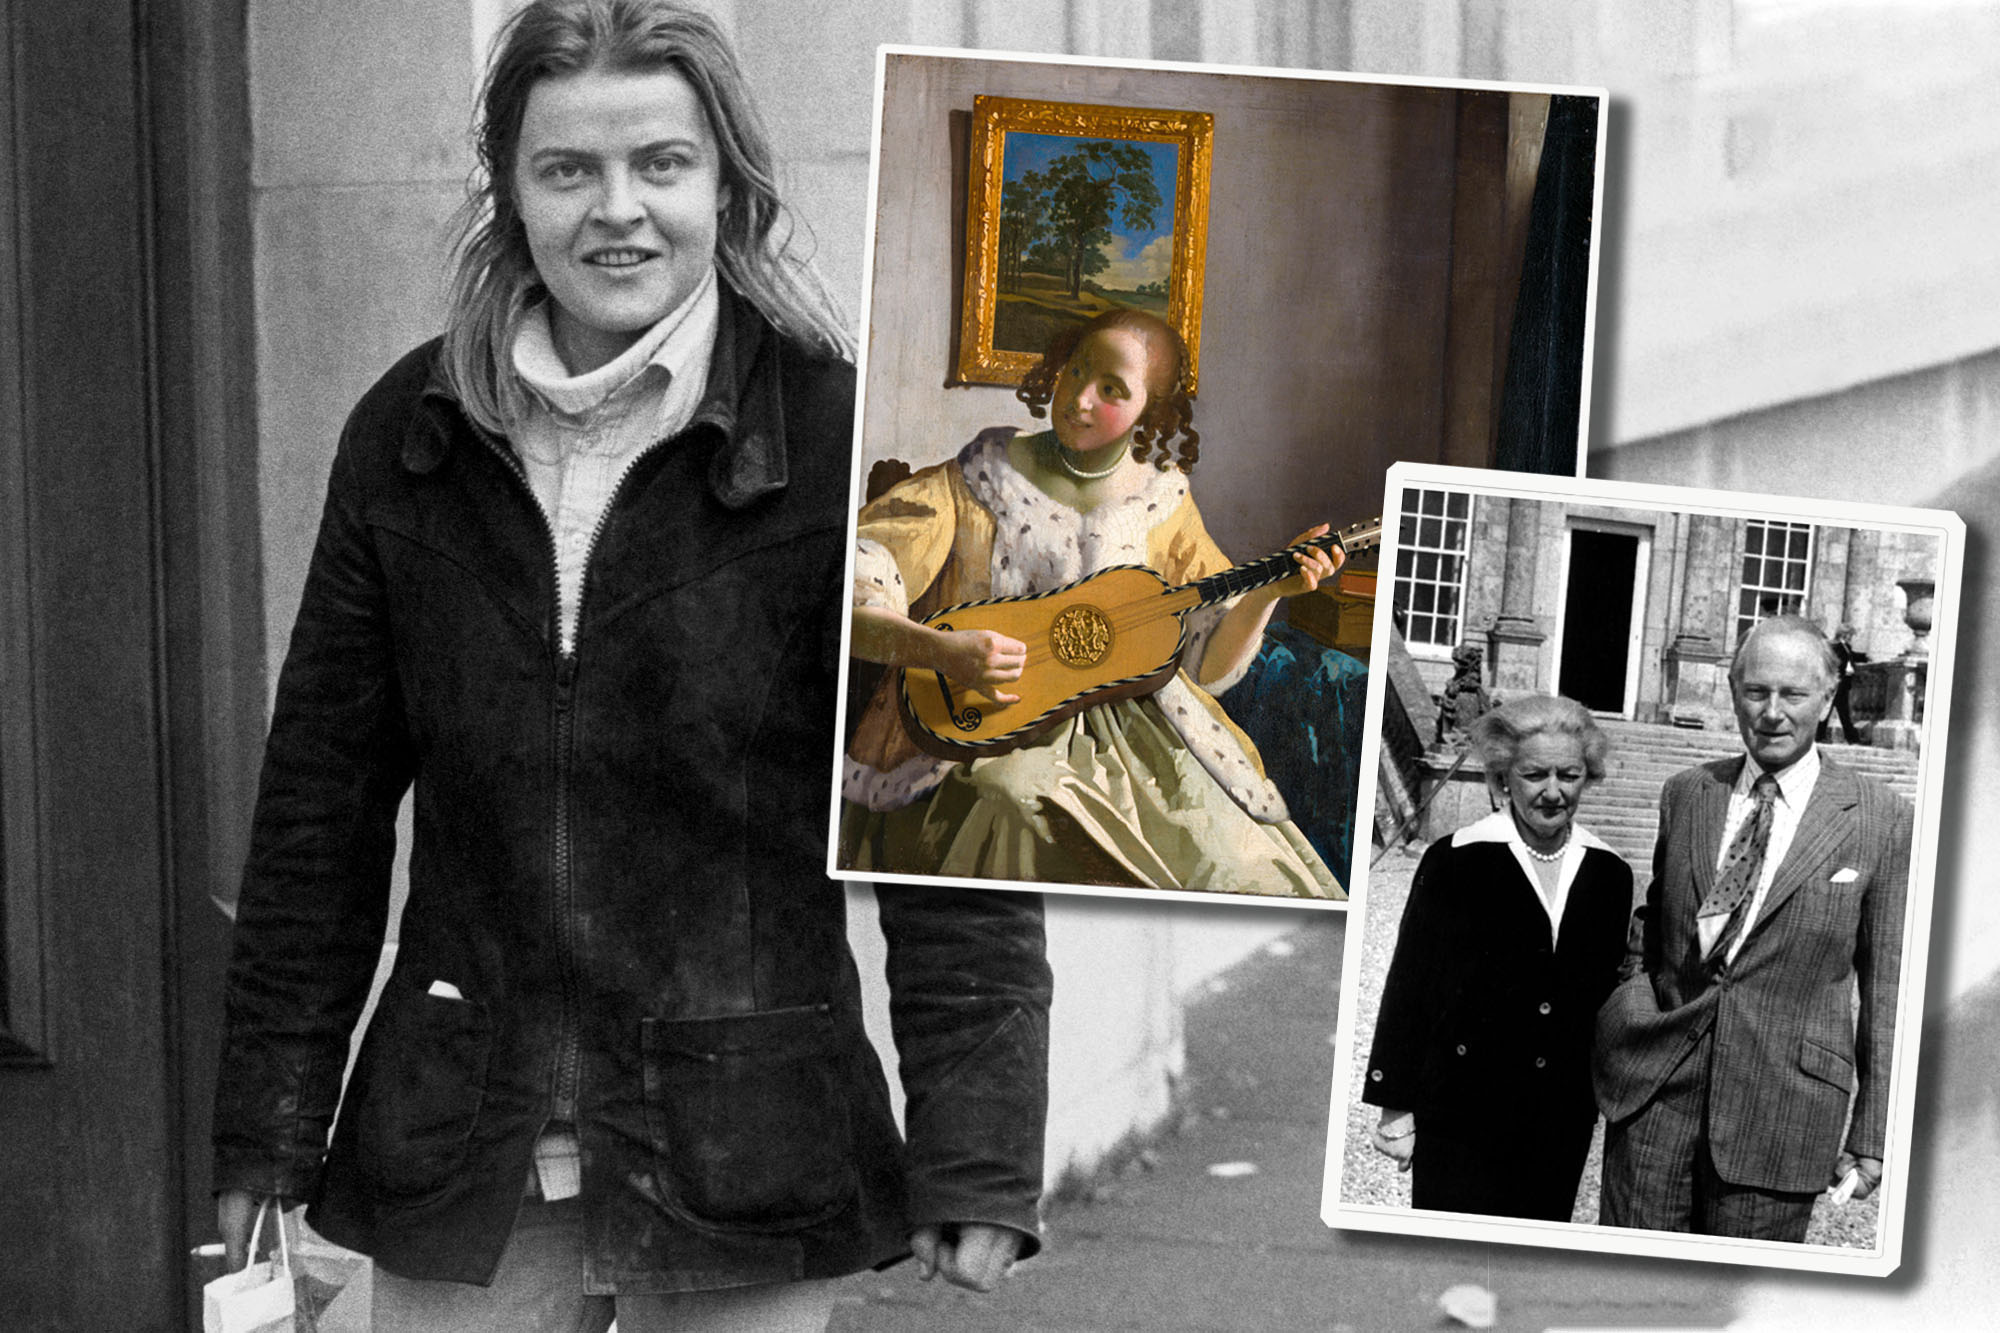 The heiress who plundered paintings to start a revolution